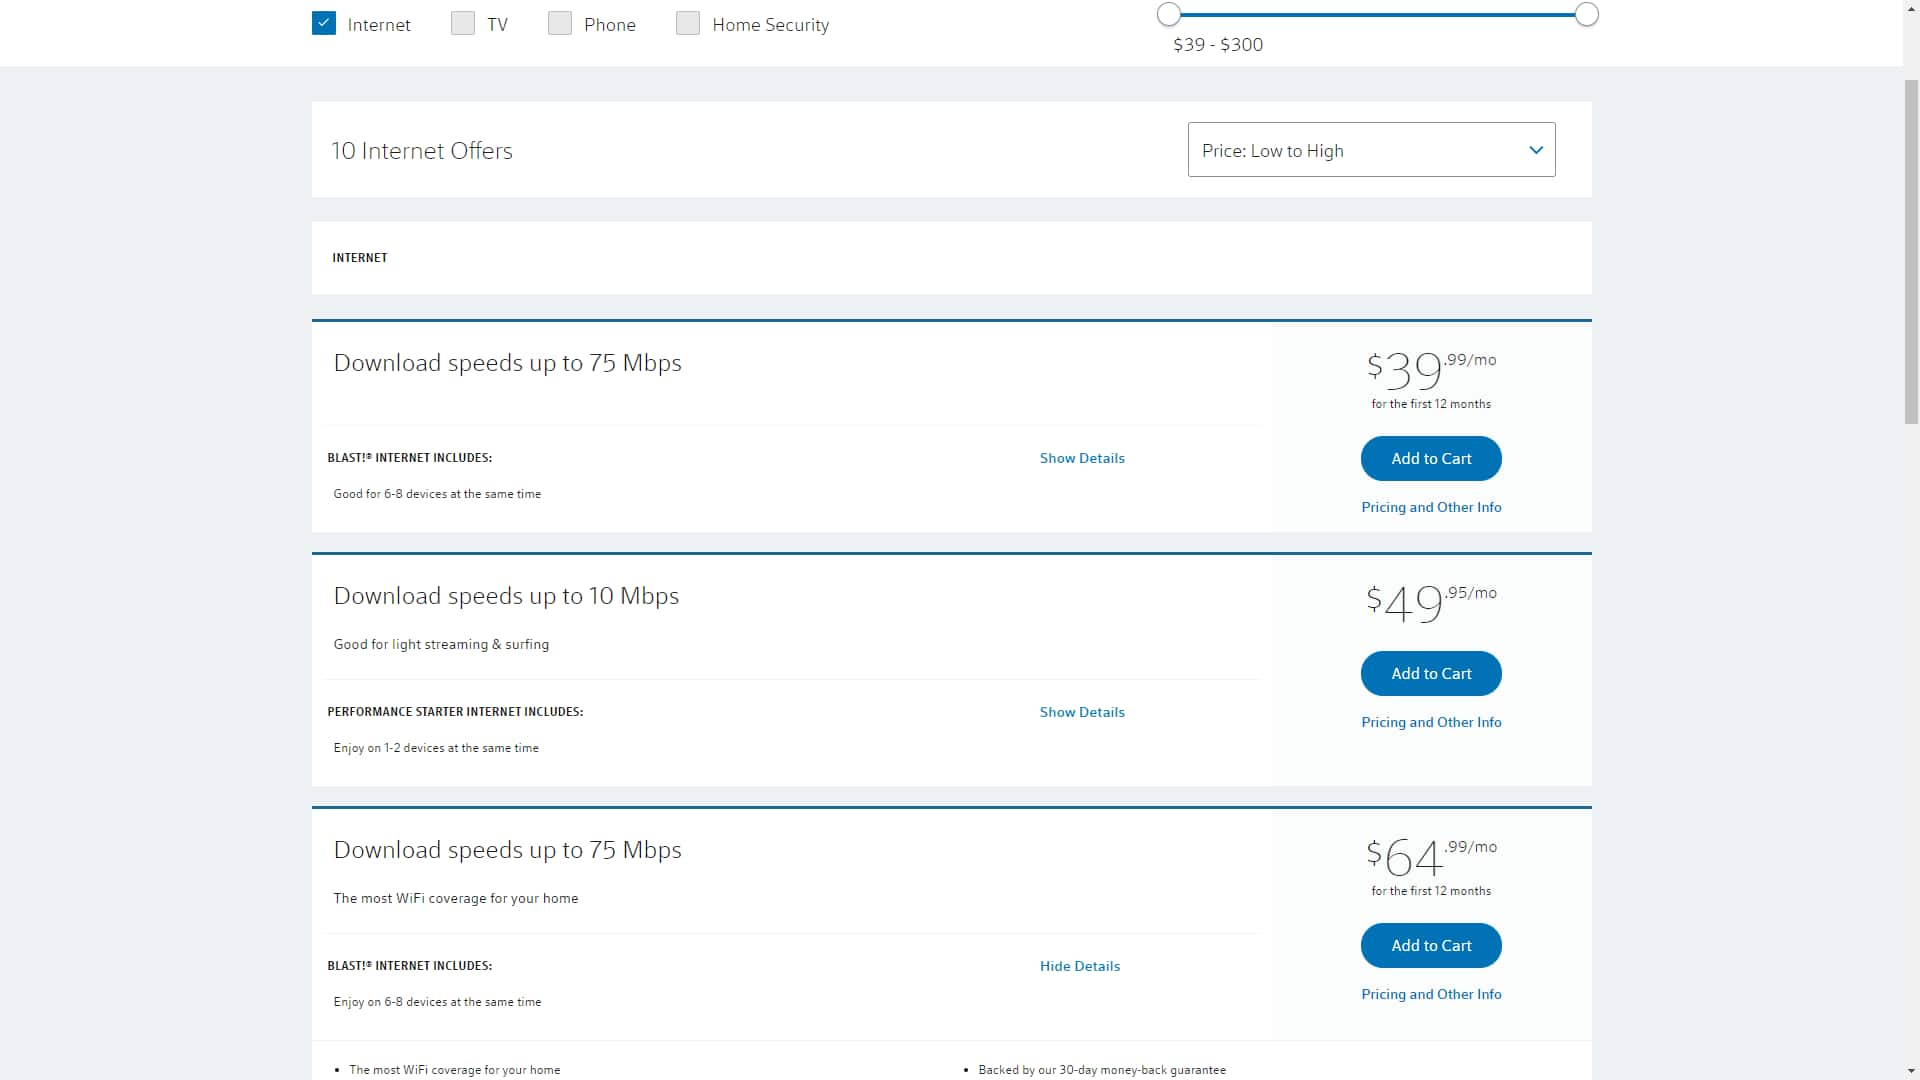 Comcast XFINITY Deals and Promotions. Below you will find the best triple play offers, TV and internet bundles, and internet only deals available for XFINITY from Comcast.